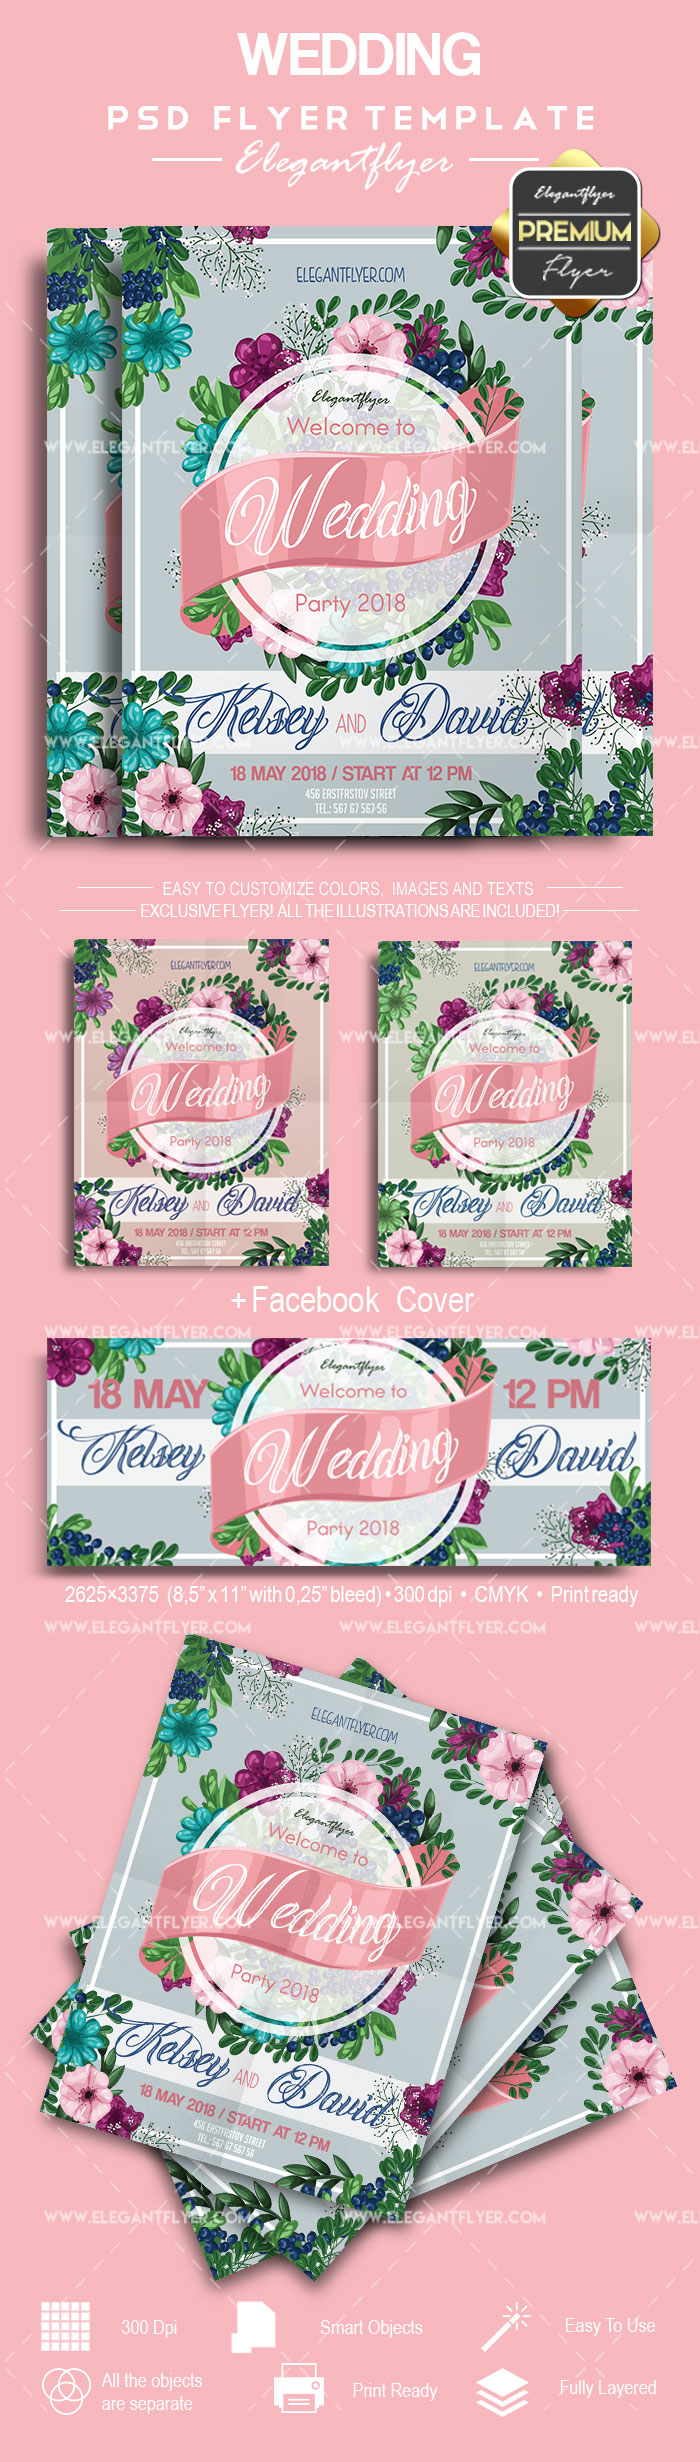 Flyer for Wedding Bouquet